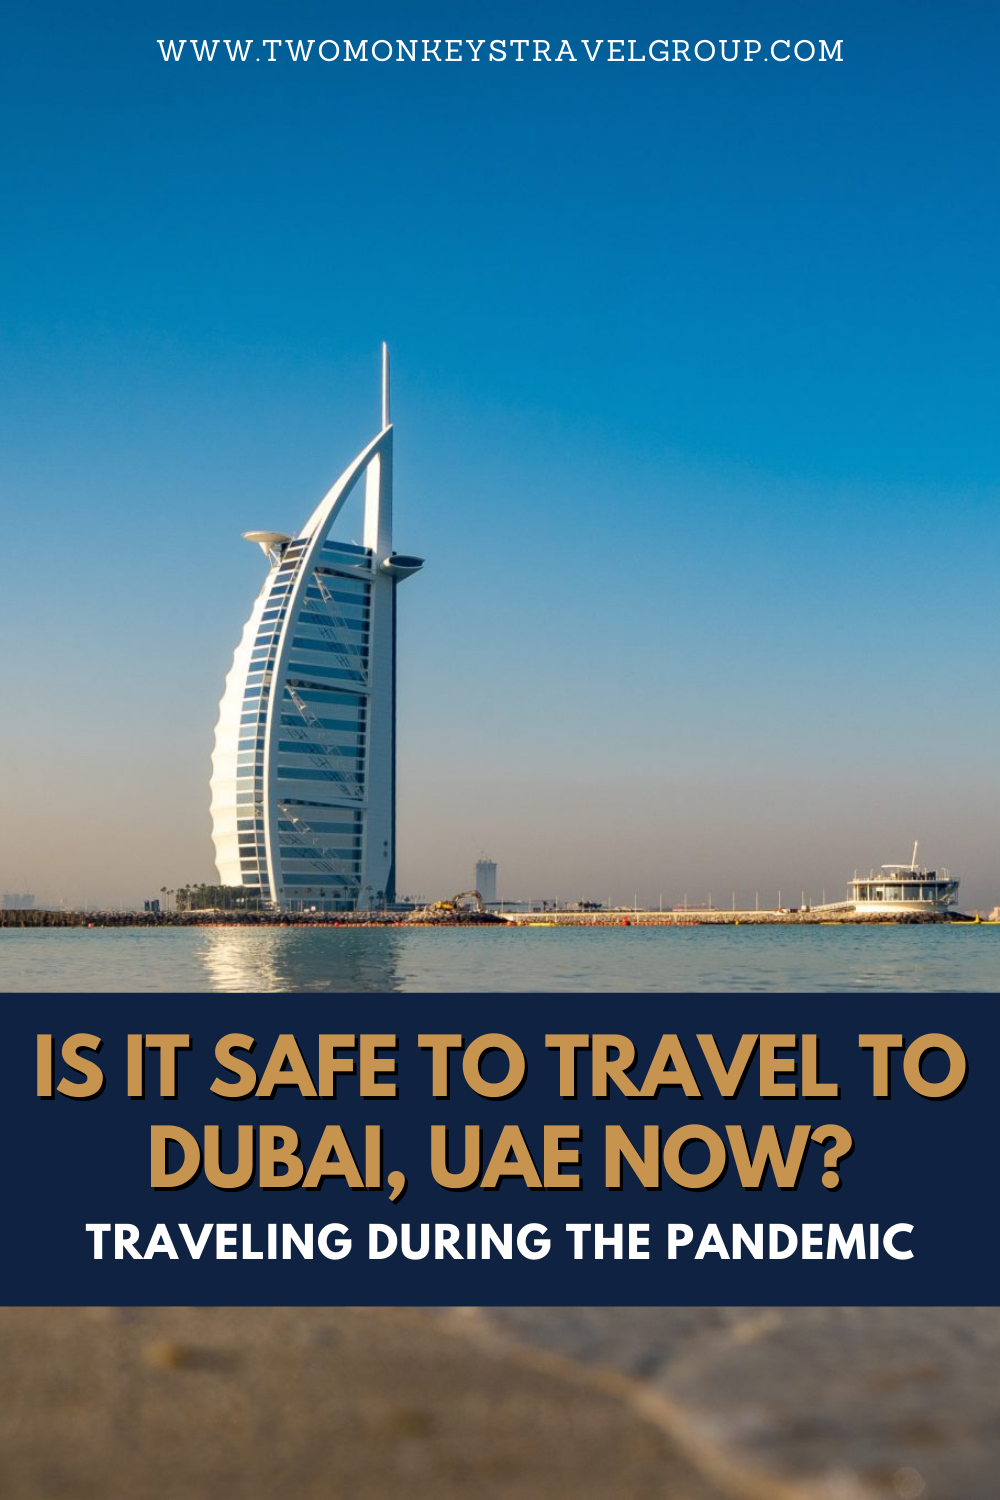 Is It Safe To Travel To Dubai, UAE Now [Traveling During the Pandemic]